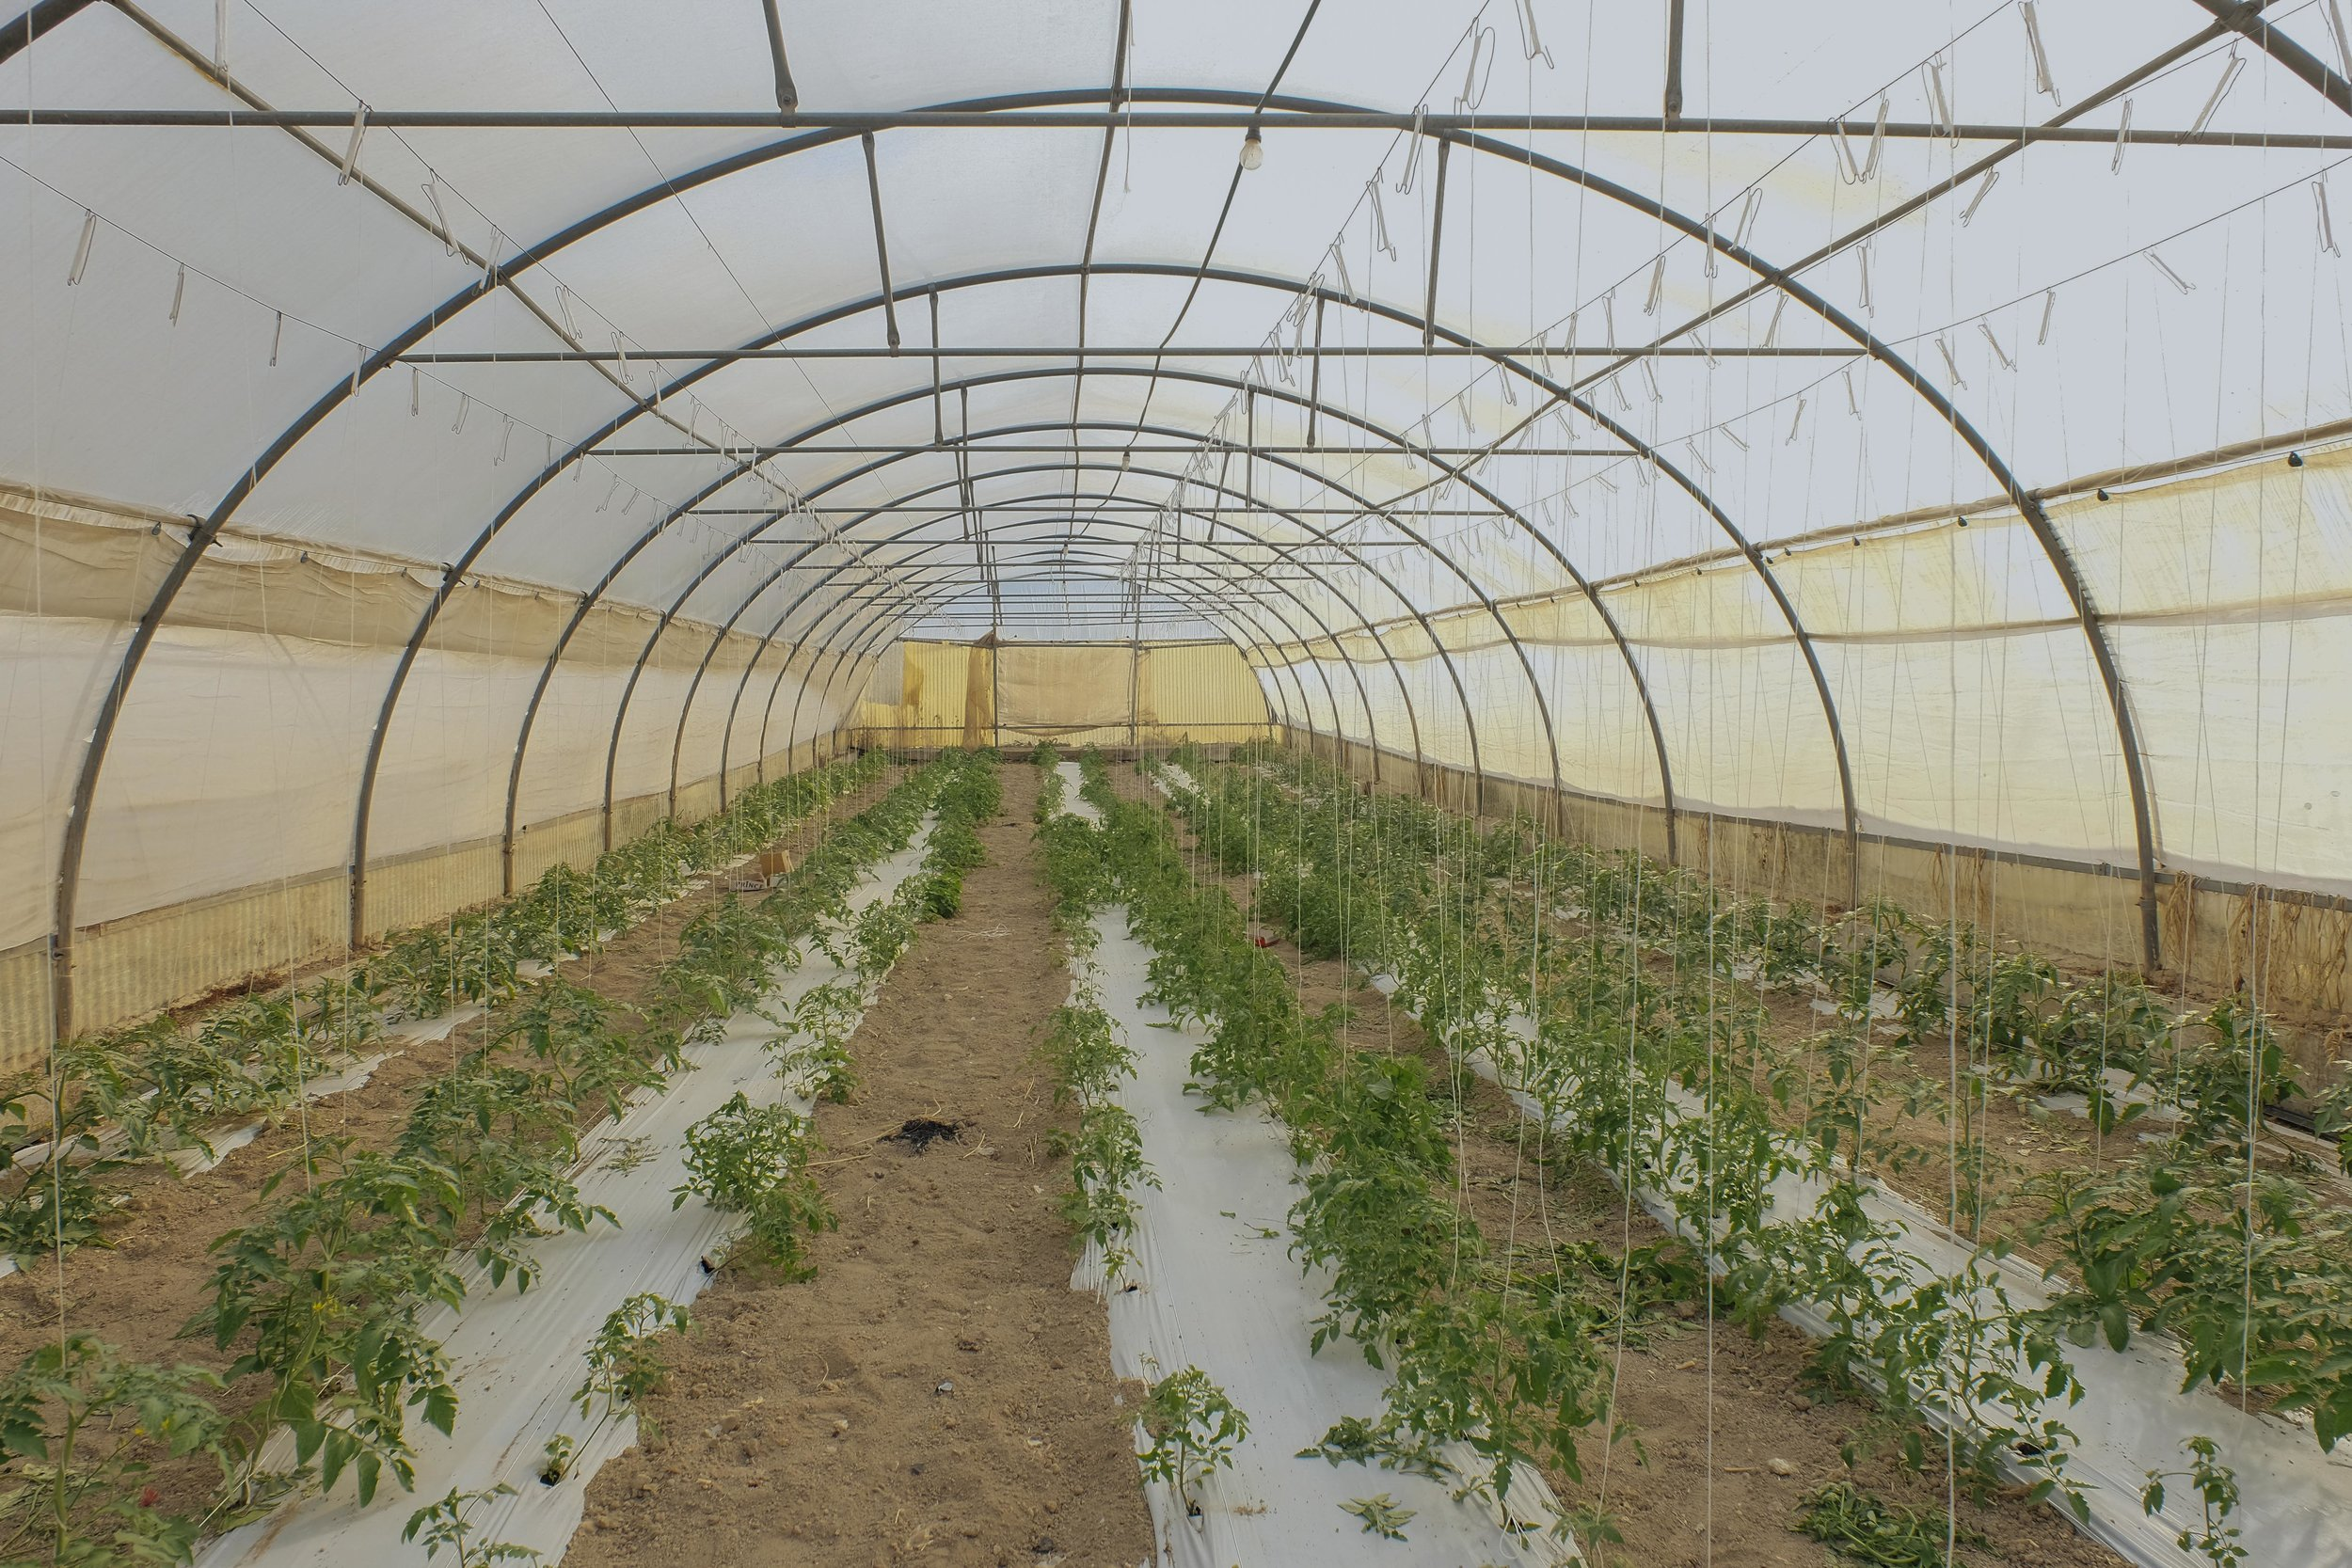 One of the greenhouses on the Bartolo farm. This one is being used to grow tomatoes.